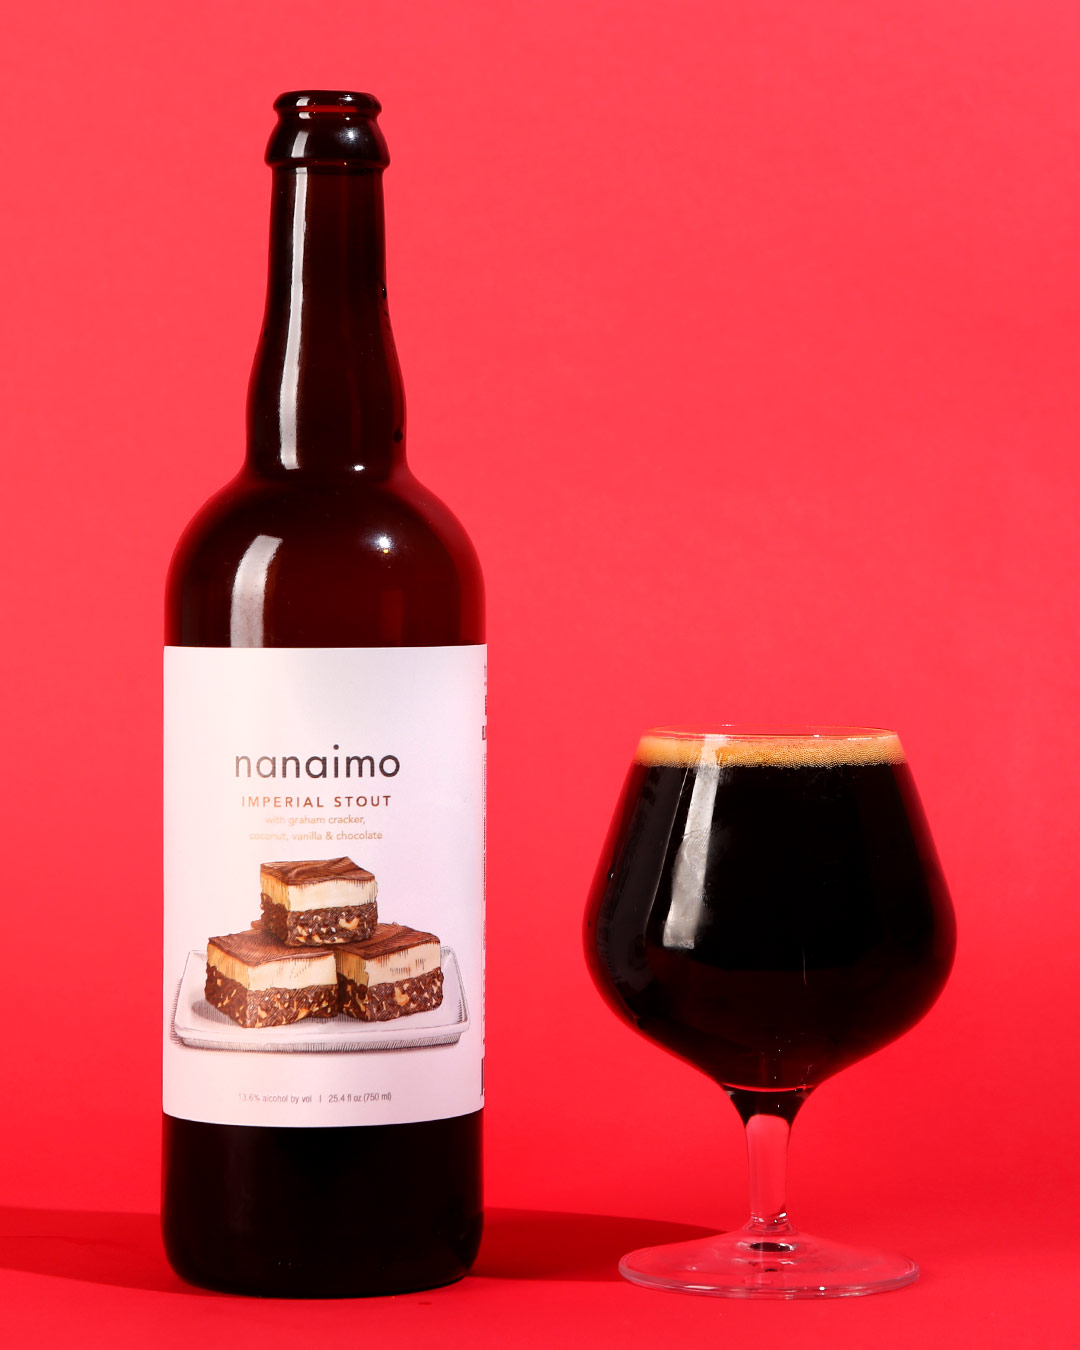 What Exactly Is a Pastry Stout?